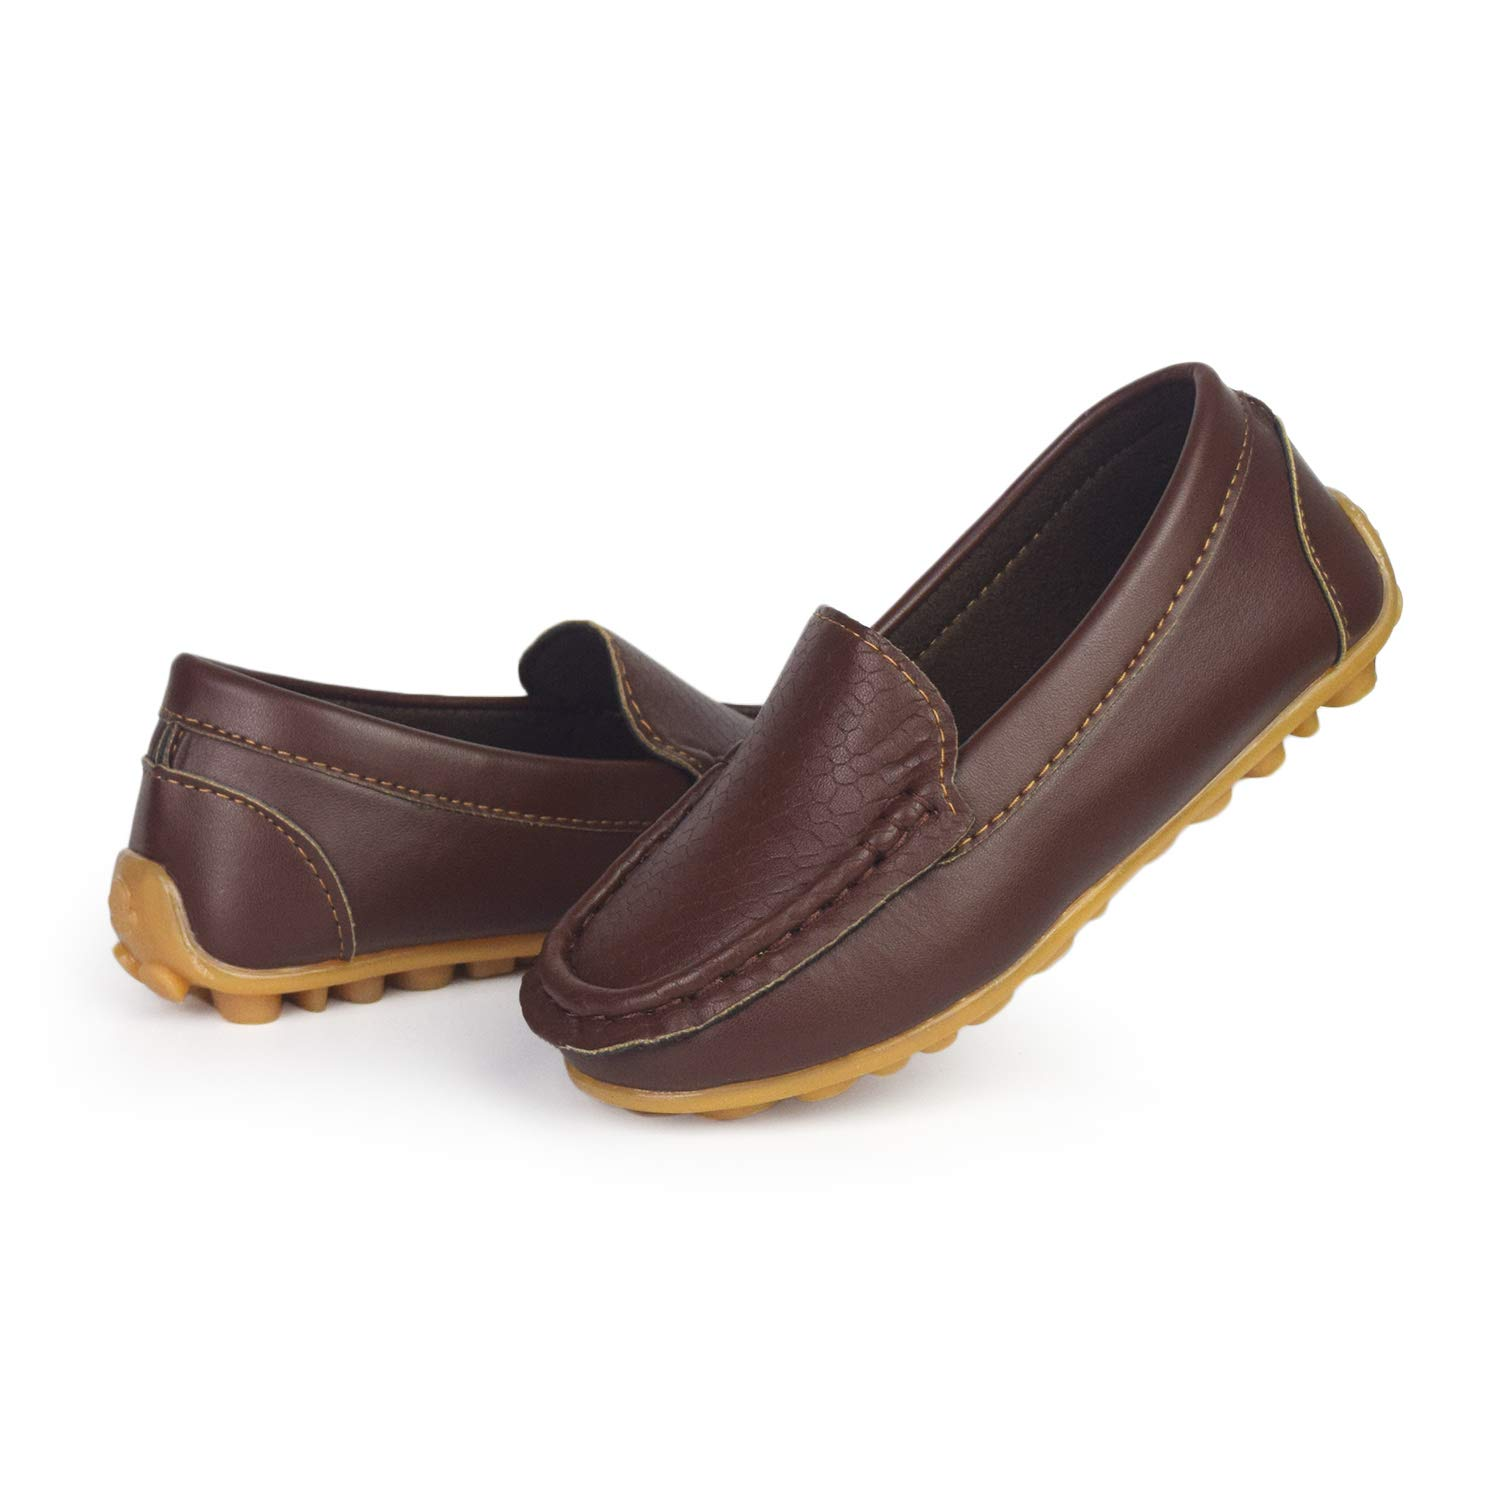 BENHERO Kids Boys Girls Loafers Slip on Soft Synthetic Leather Boat Dress Shoes Flat(5 M US Toddler,A-Brown)